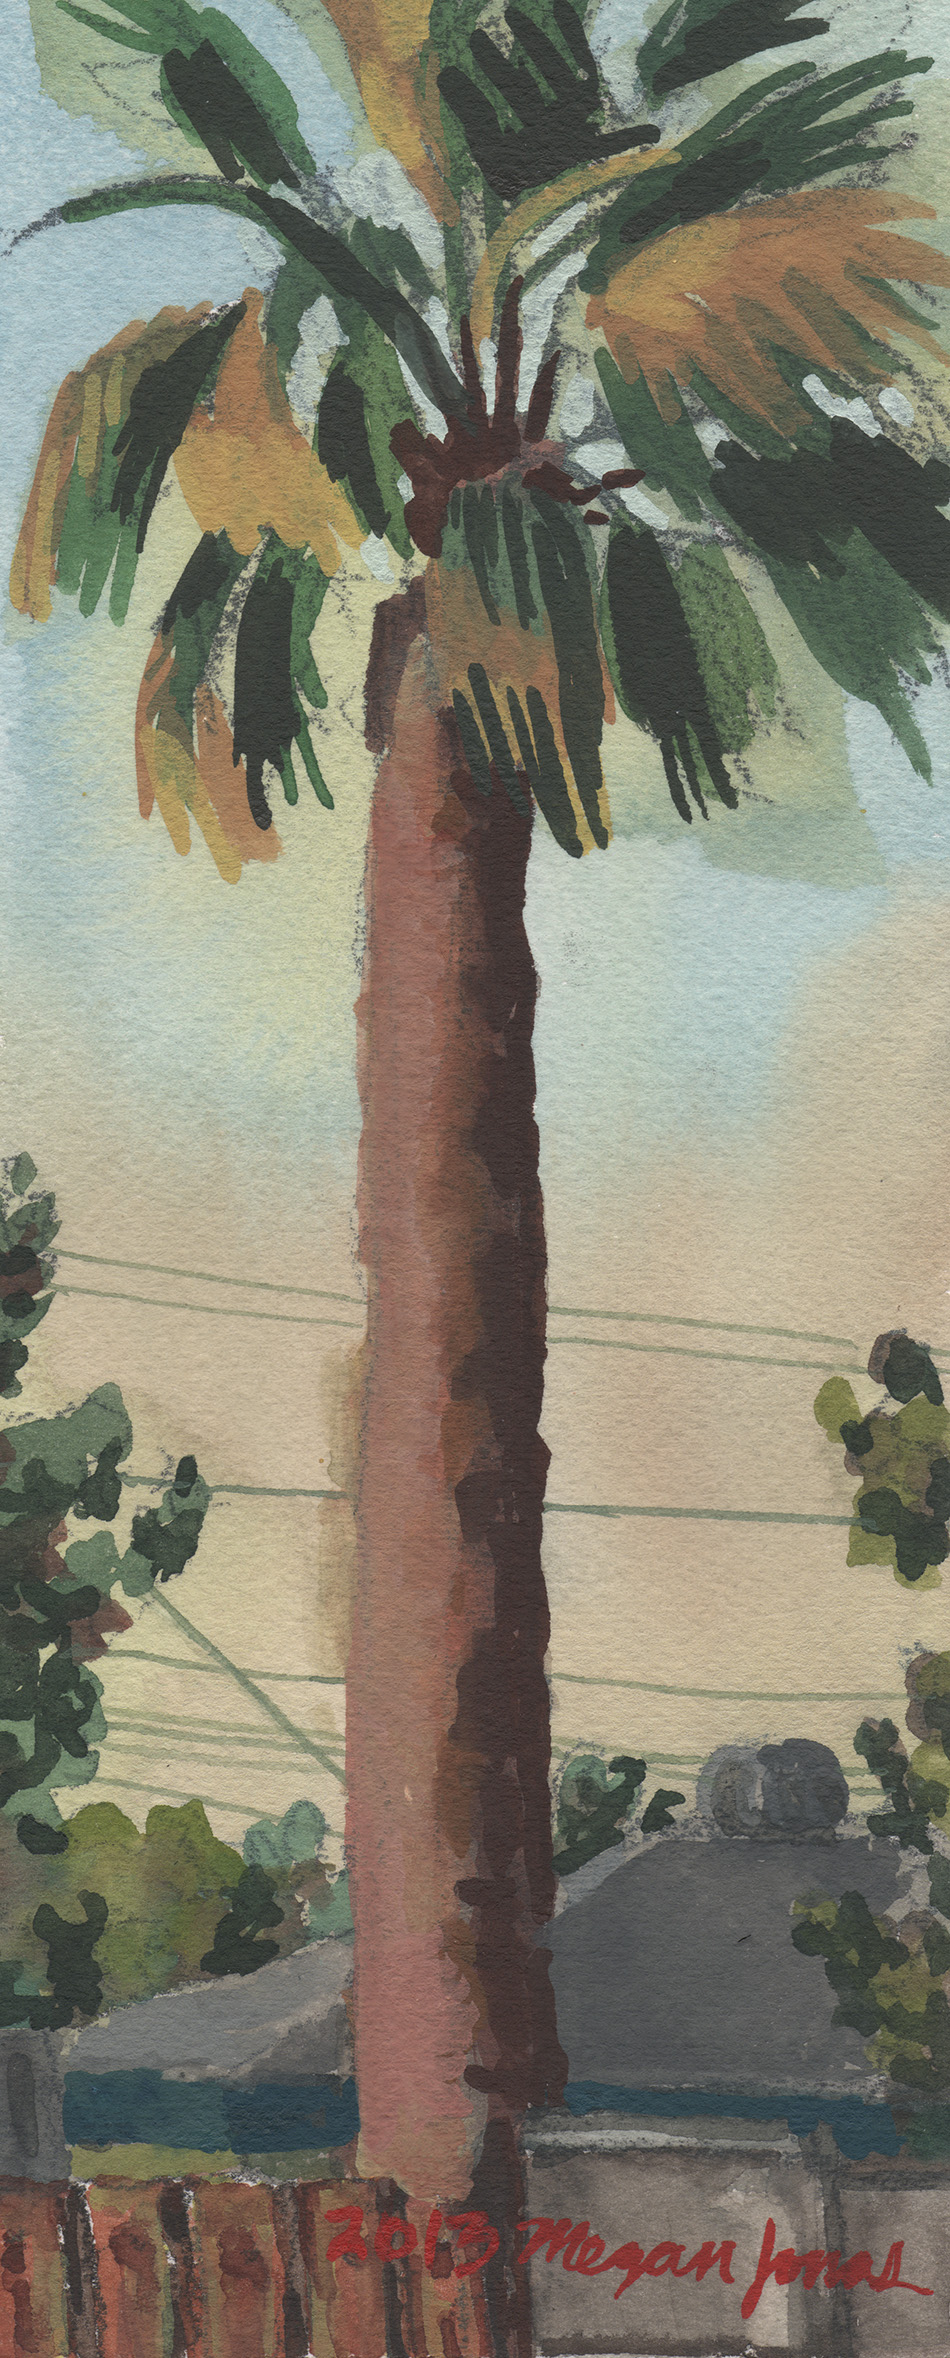 Another Palm Tree